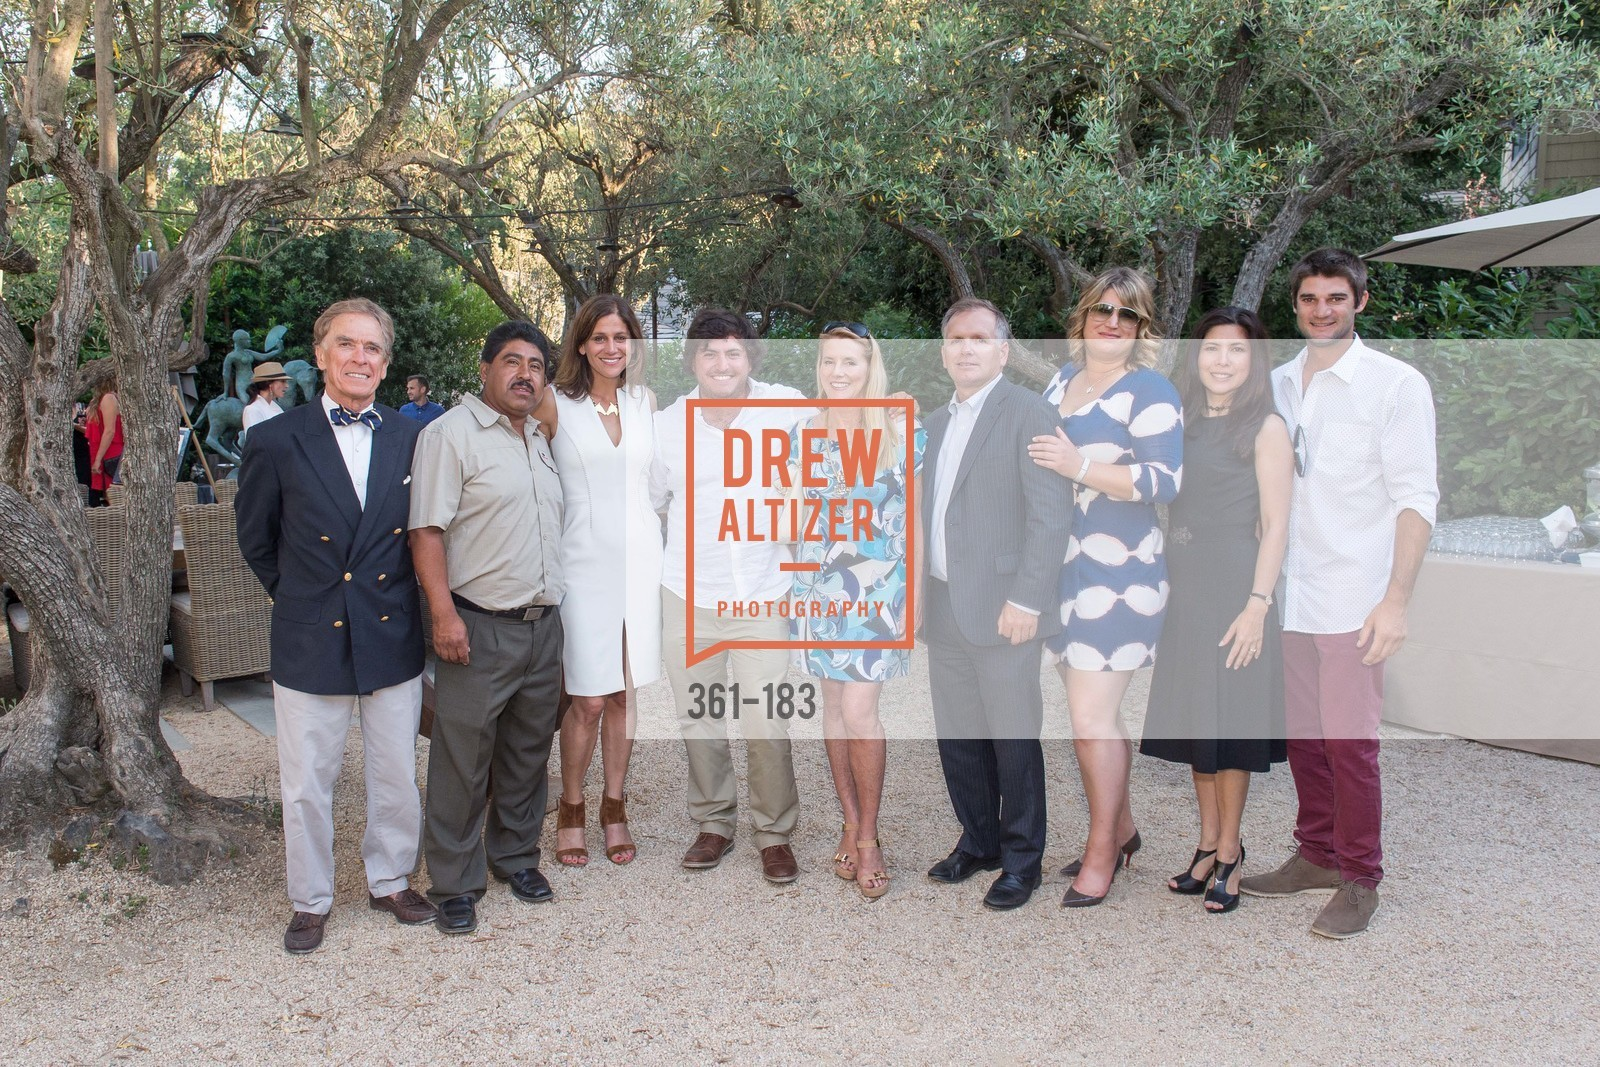 Paul Griffin, Juan Torres, Elizabeth Welborn, Toto Socas, Christine DeLimur, Richard Manfield, Elizabeth Duffy, Ignacio Deldour, Oyster Cup Polo Tournament Preview Party Hosted by Cerro Pampa Polo Club and Stick & Ball, Ma(i)sonry. 6711 Washington St, June 25th, 2015,Drew Altizer, Drew Altizer Photography, full-service agency, private events, San Francisco photographer, photographer california